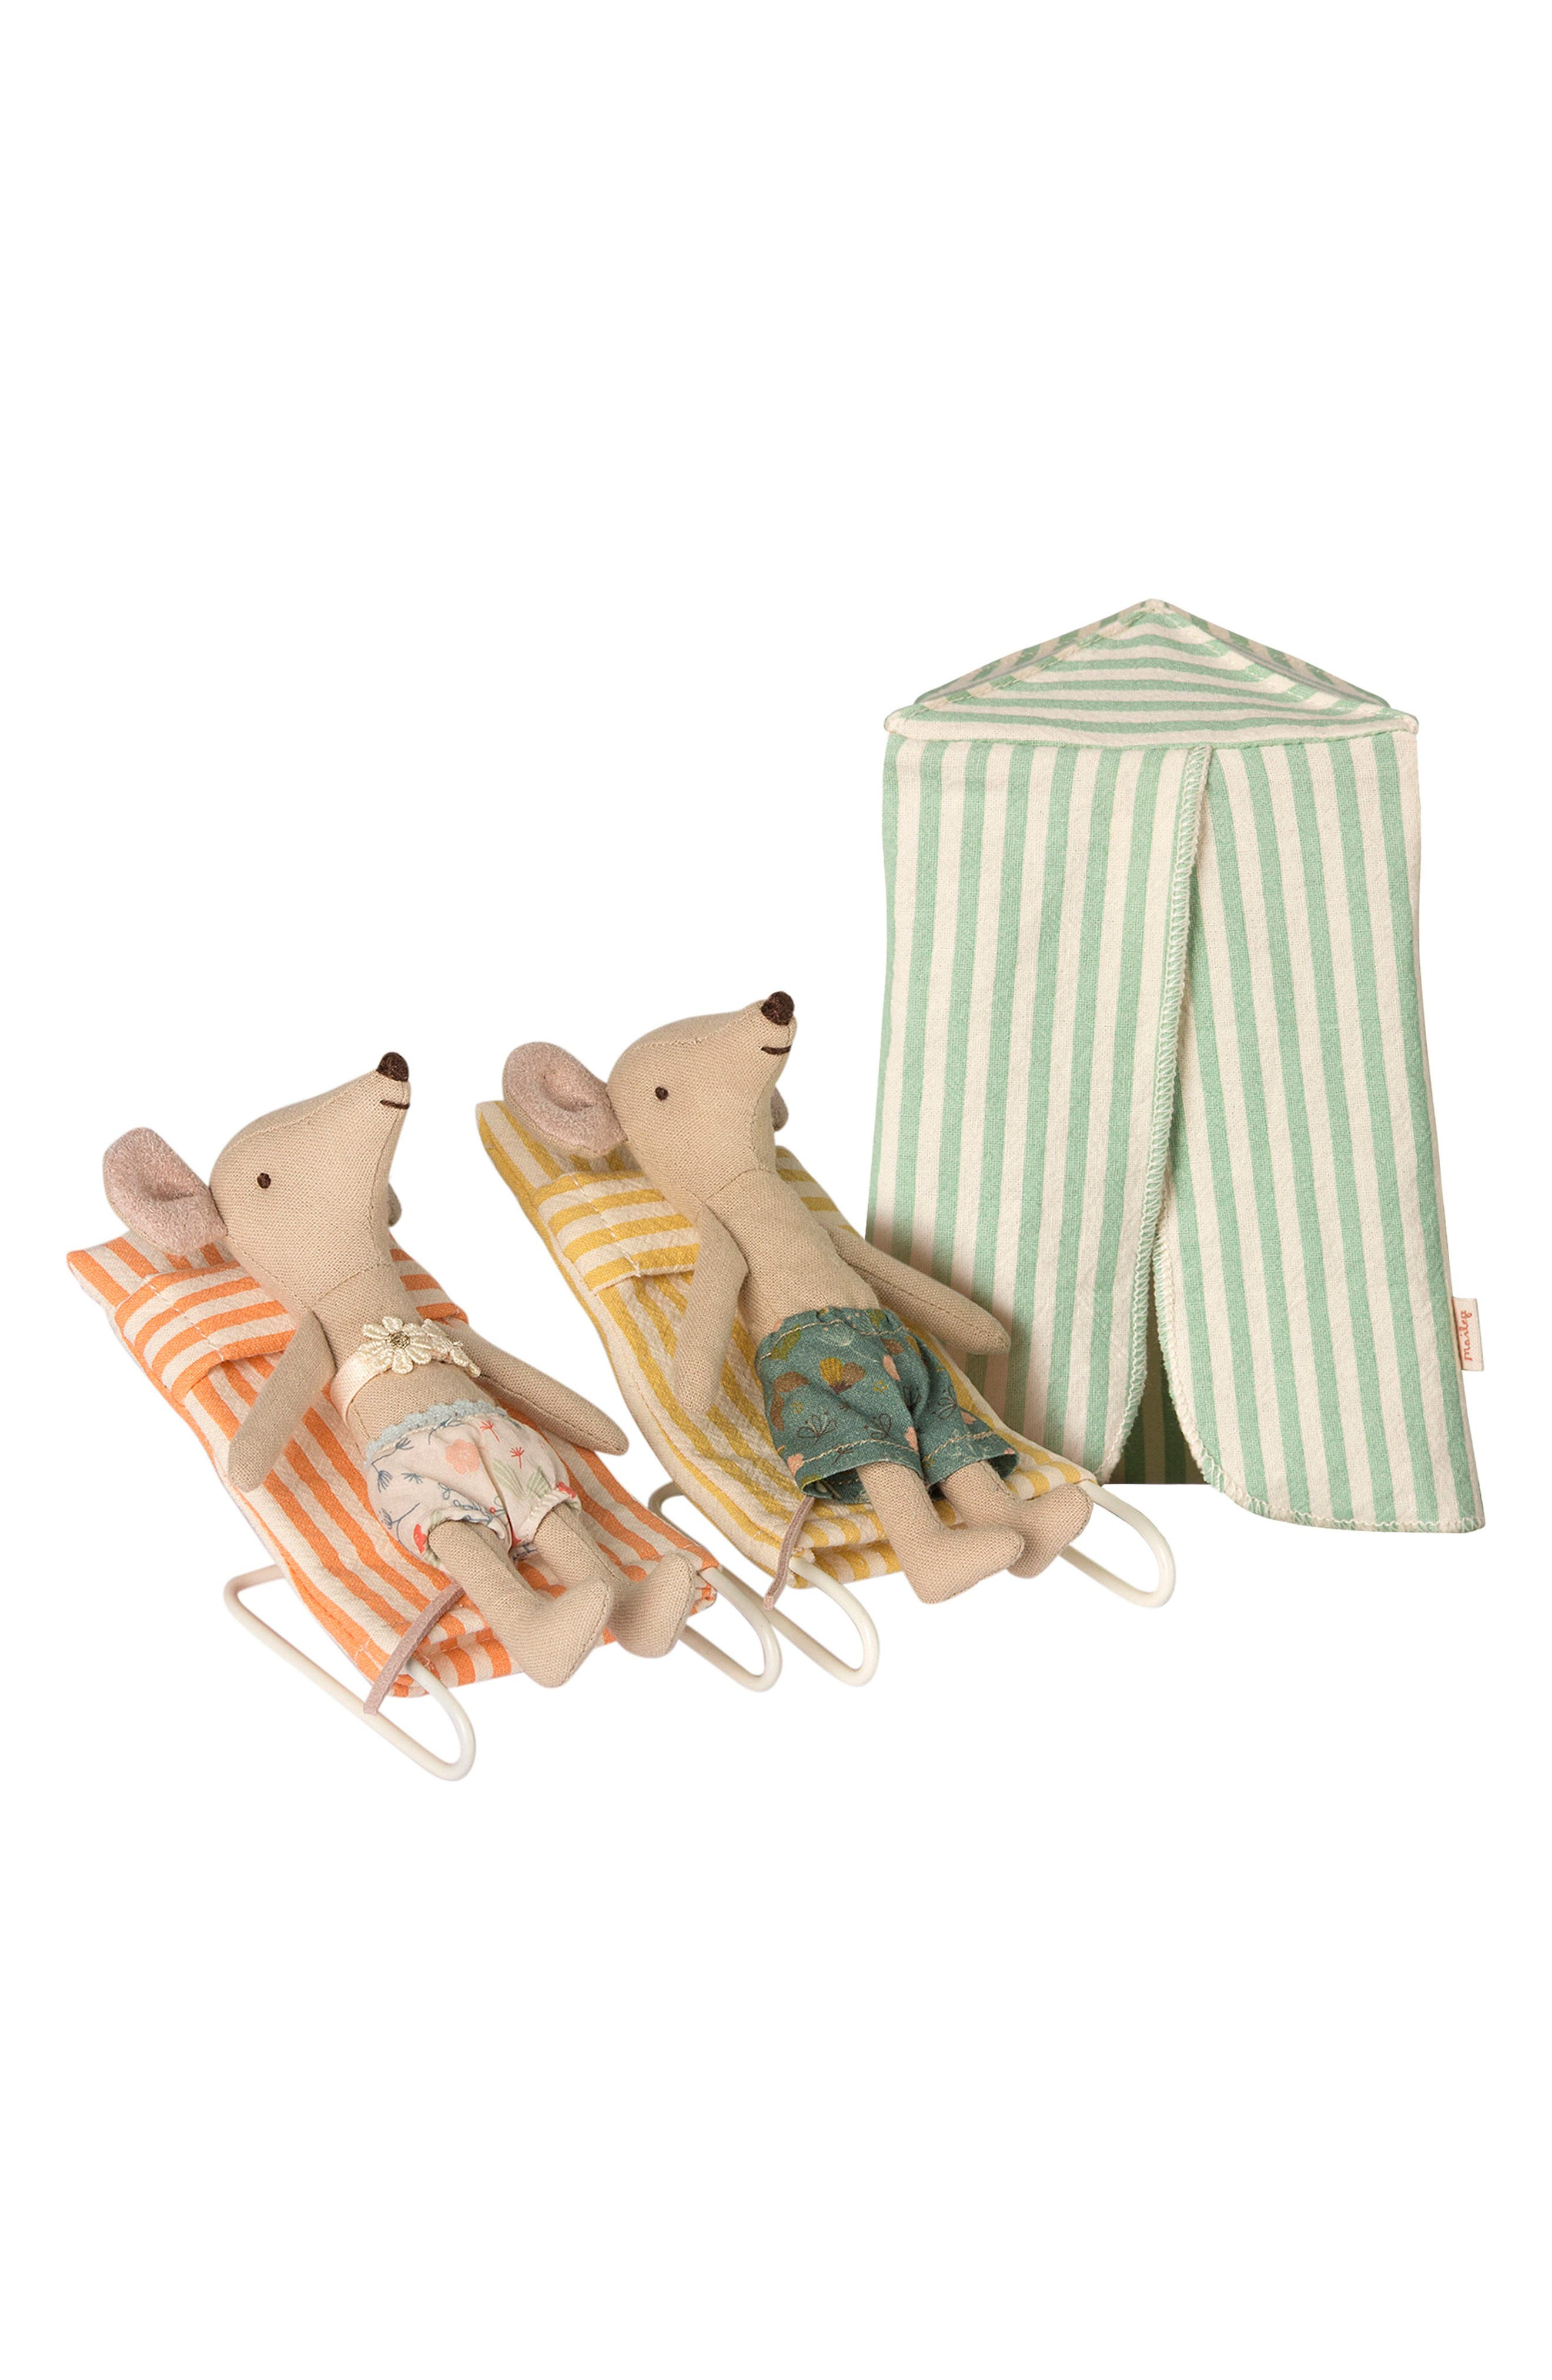 Maileg 5-Piece Mouse Vacation Play Set